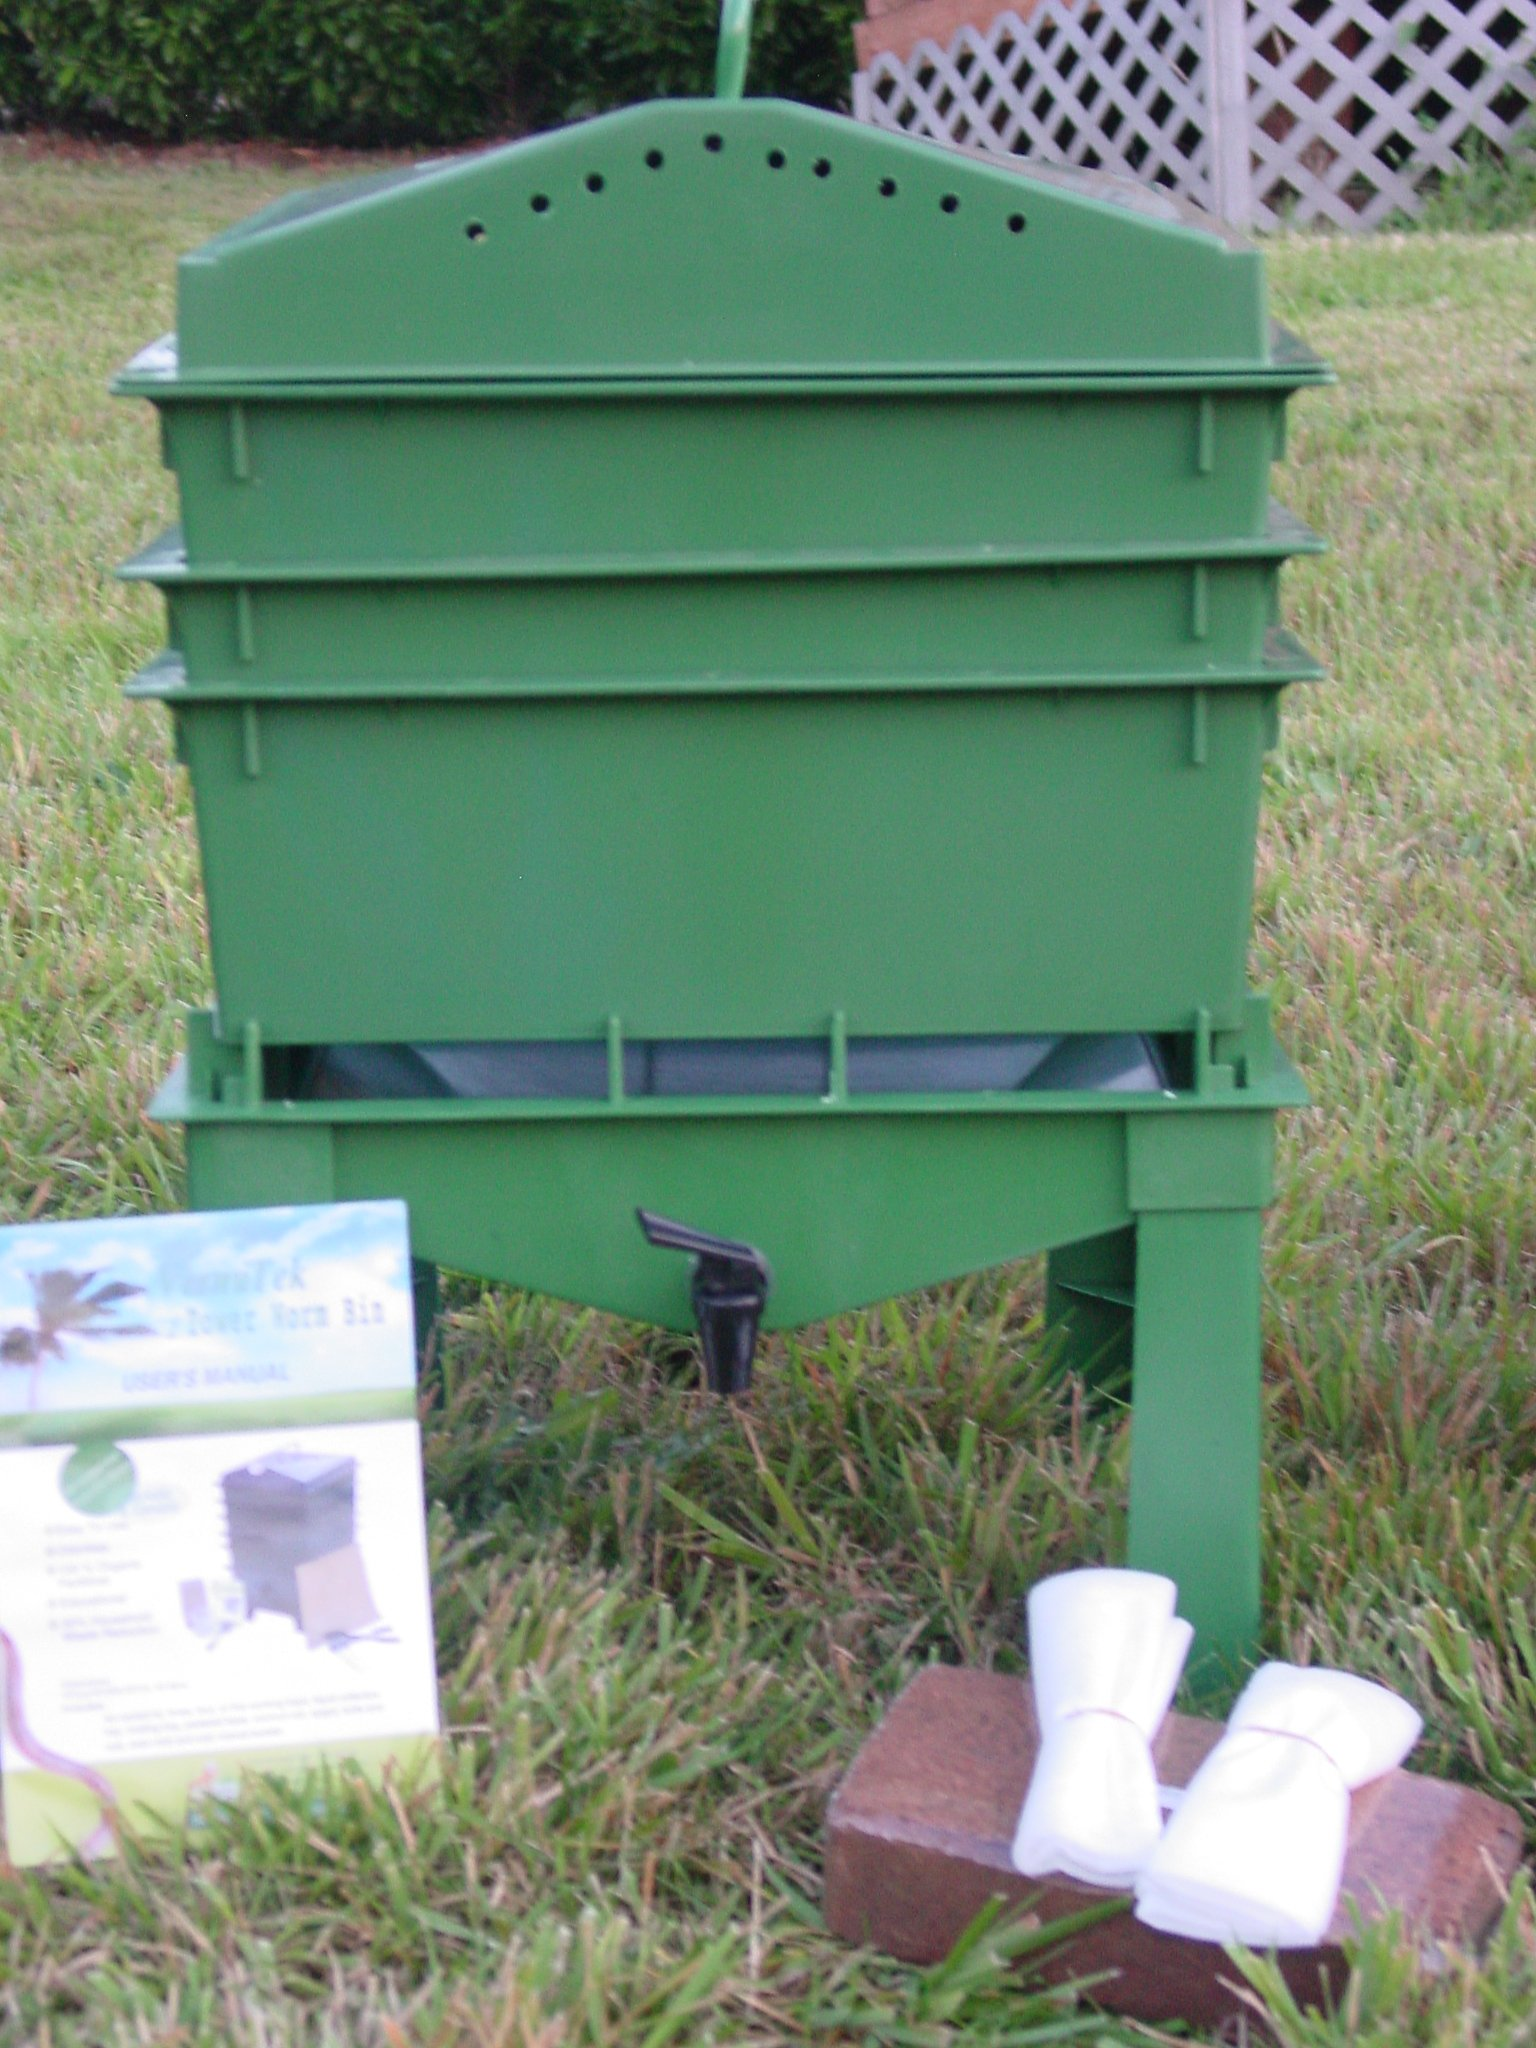 4-Tray Worm Compost Bin iTower-Green